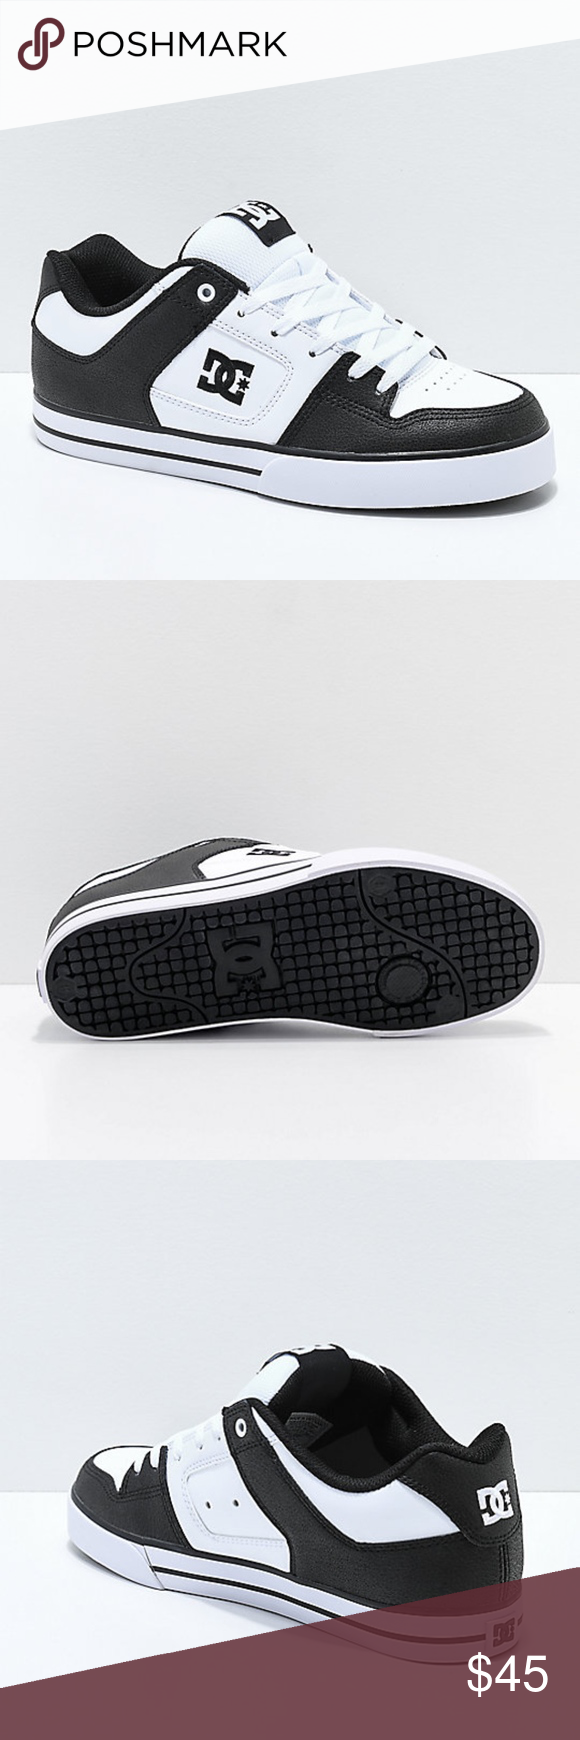 DC Pure Black & White Skate Shoes Mens Sz 11.5 DC Pure Black & White Skate Shoes Mens Sz 11.5  Featured with elements unique to DC's rich DNA, the Pure Skate Shoes are durable and built with nubuck across the upper. Designed with an all around supportive cupsole construction, these shoes boast protection when skating down those big gaps and stair sets.  SKU573 DC Shoes Sneakers #purewhite